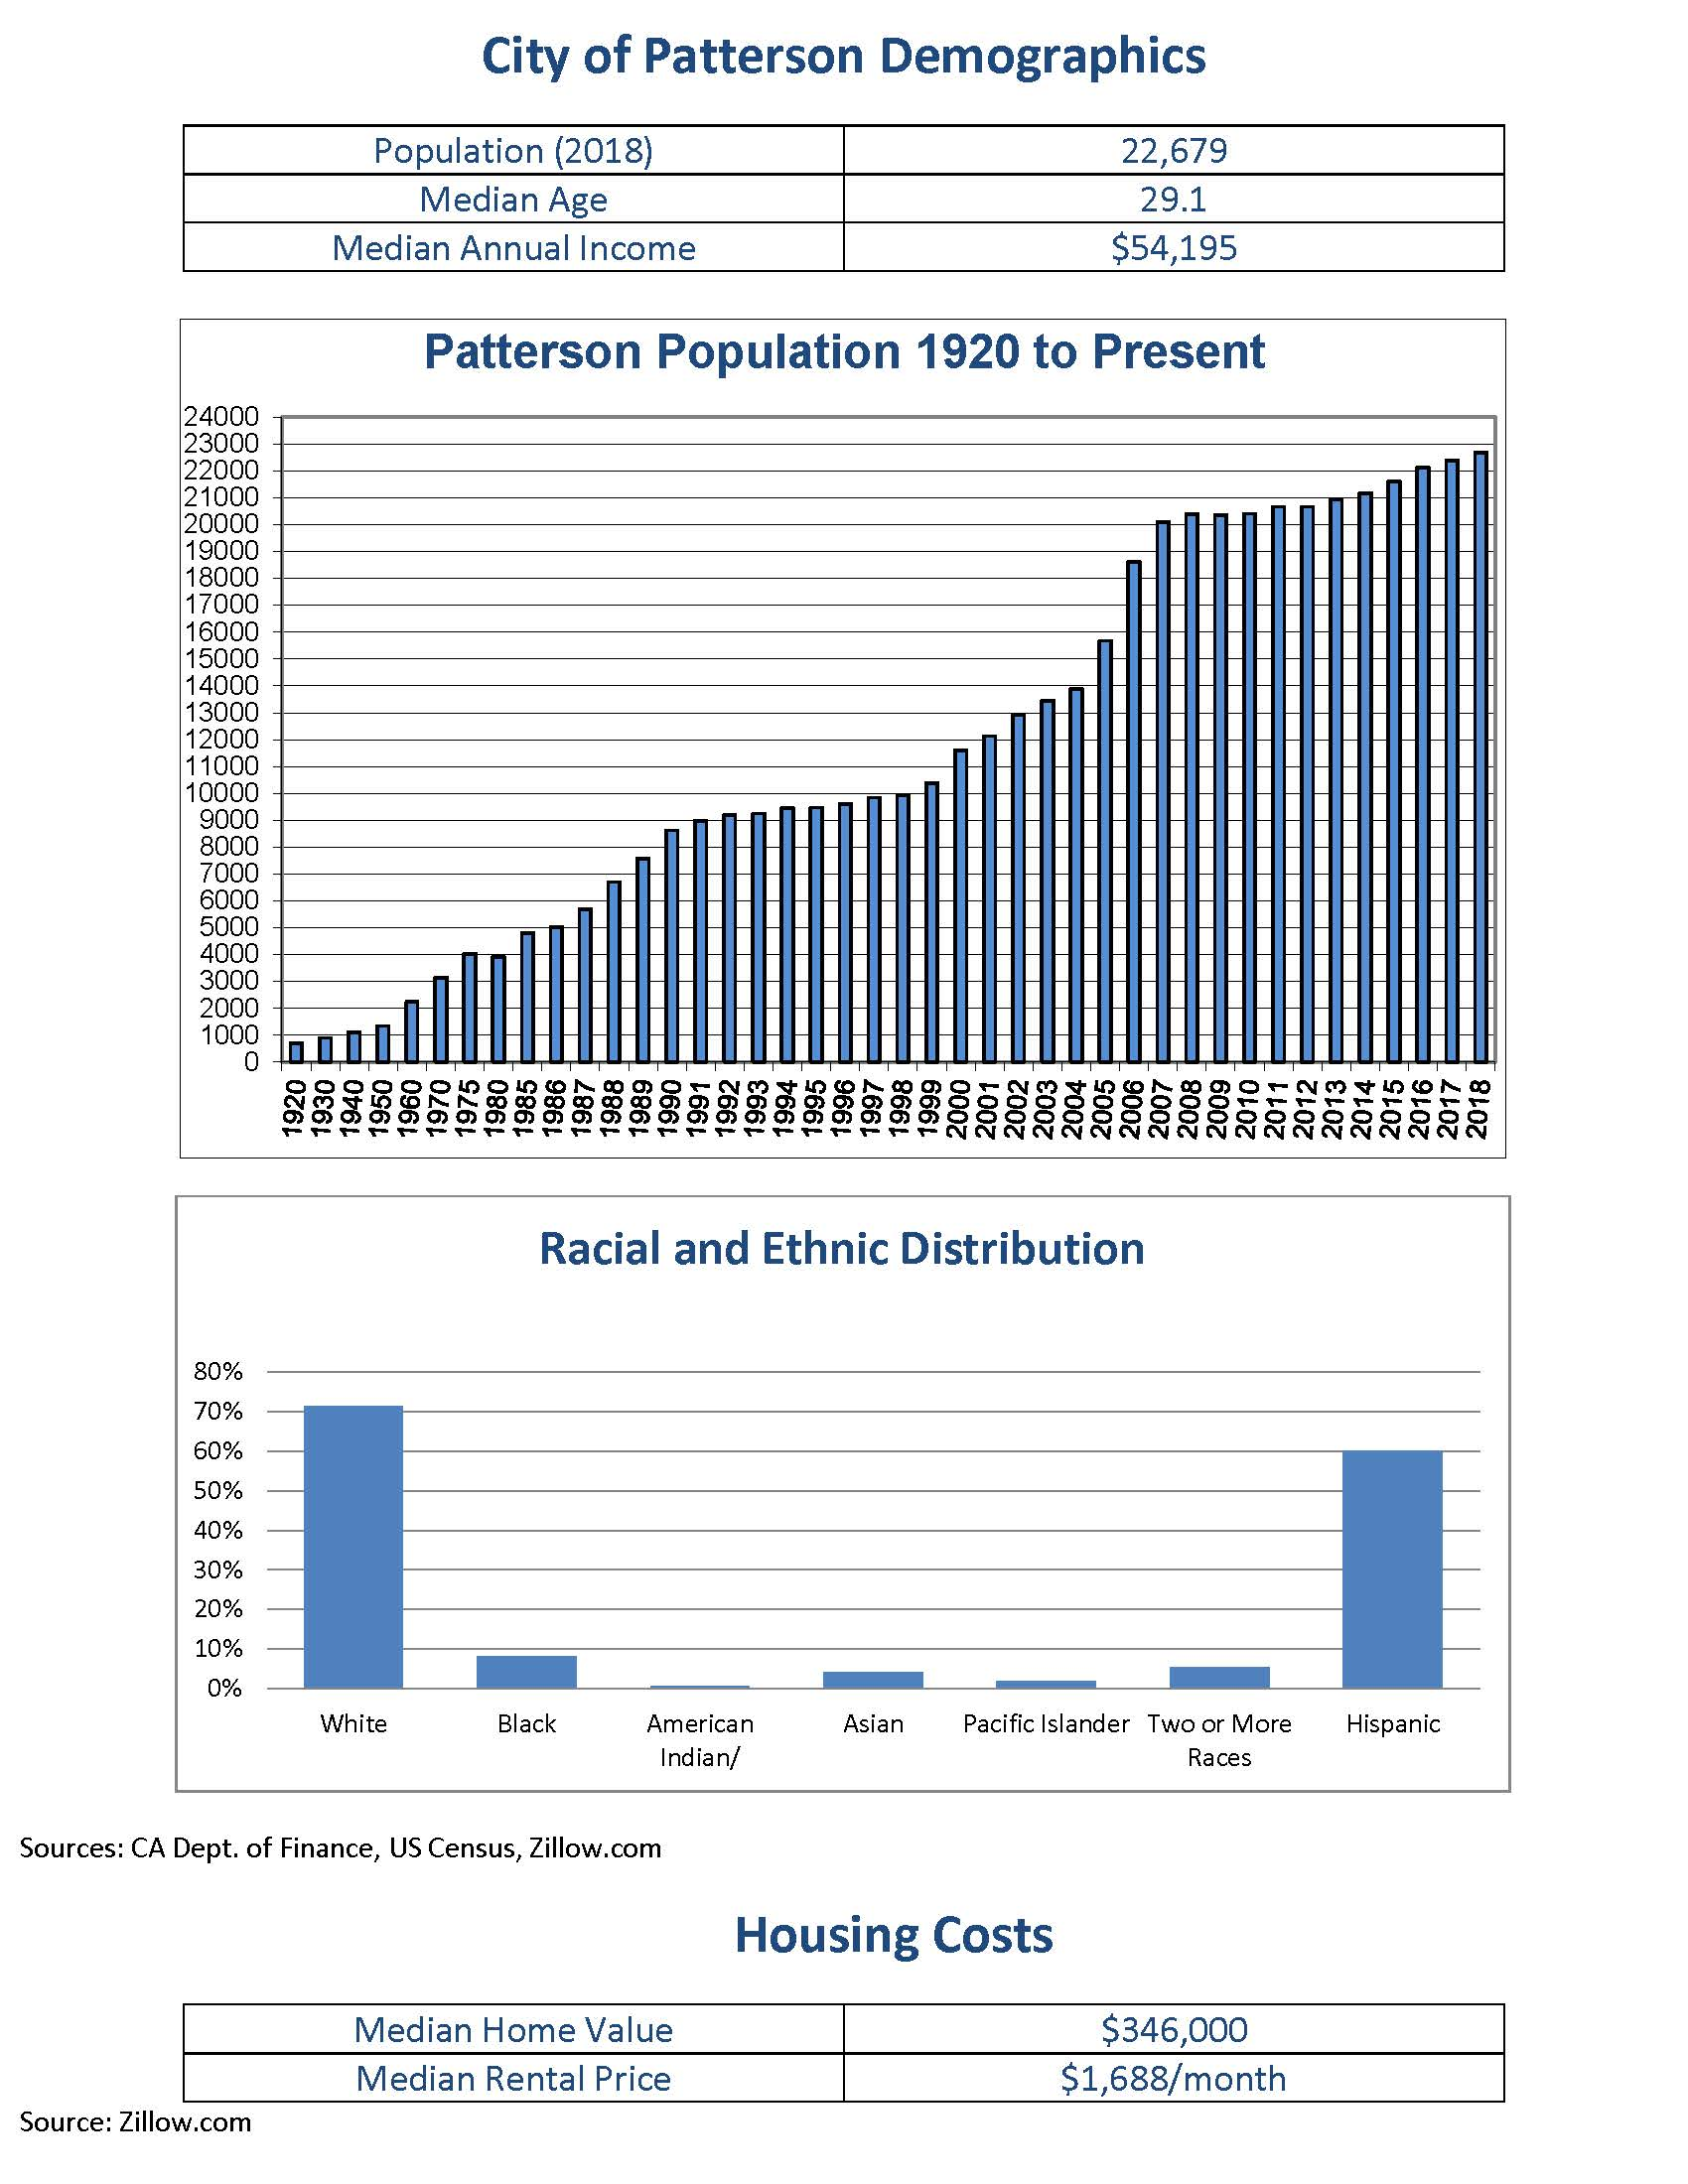 City of Patterson Demographics 2018